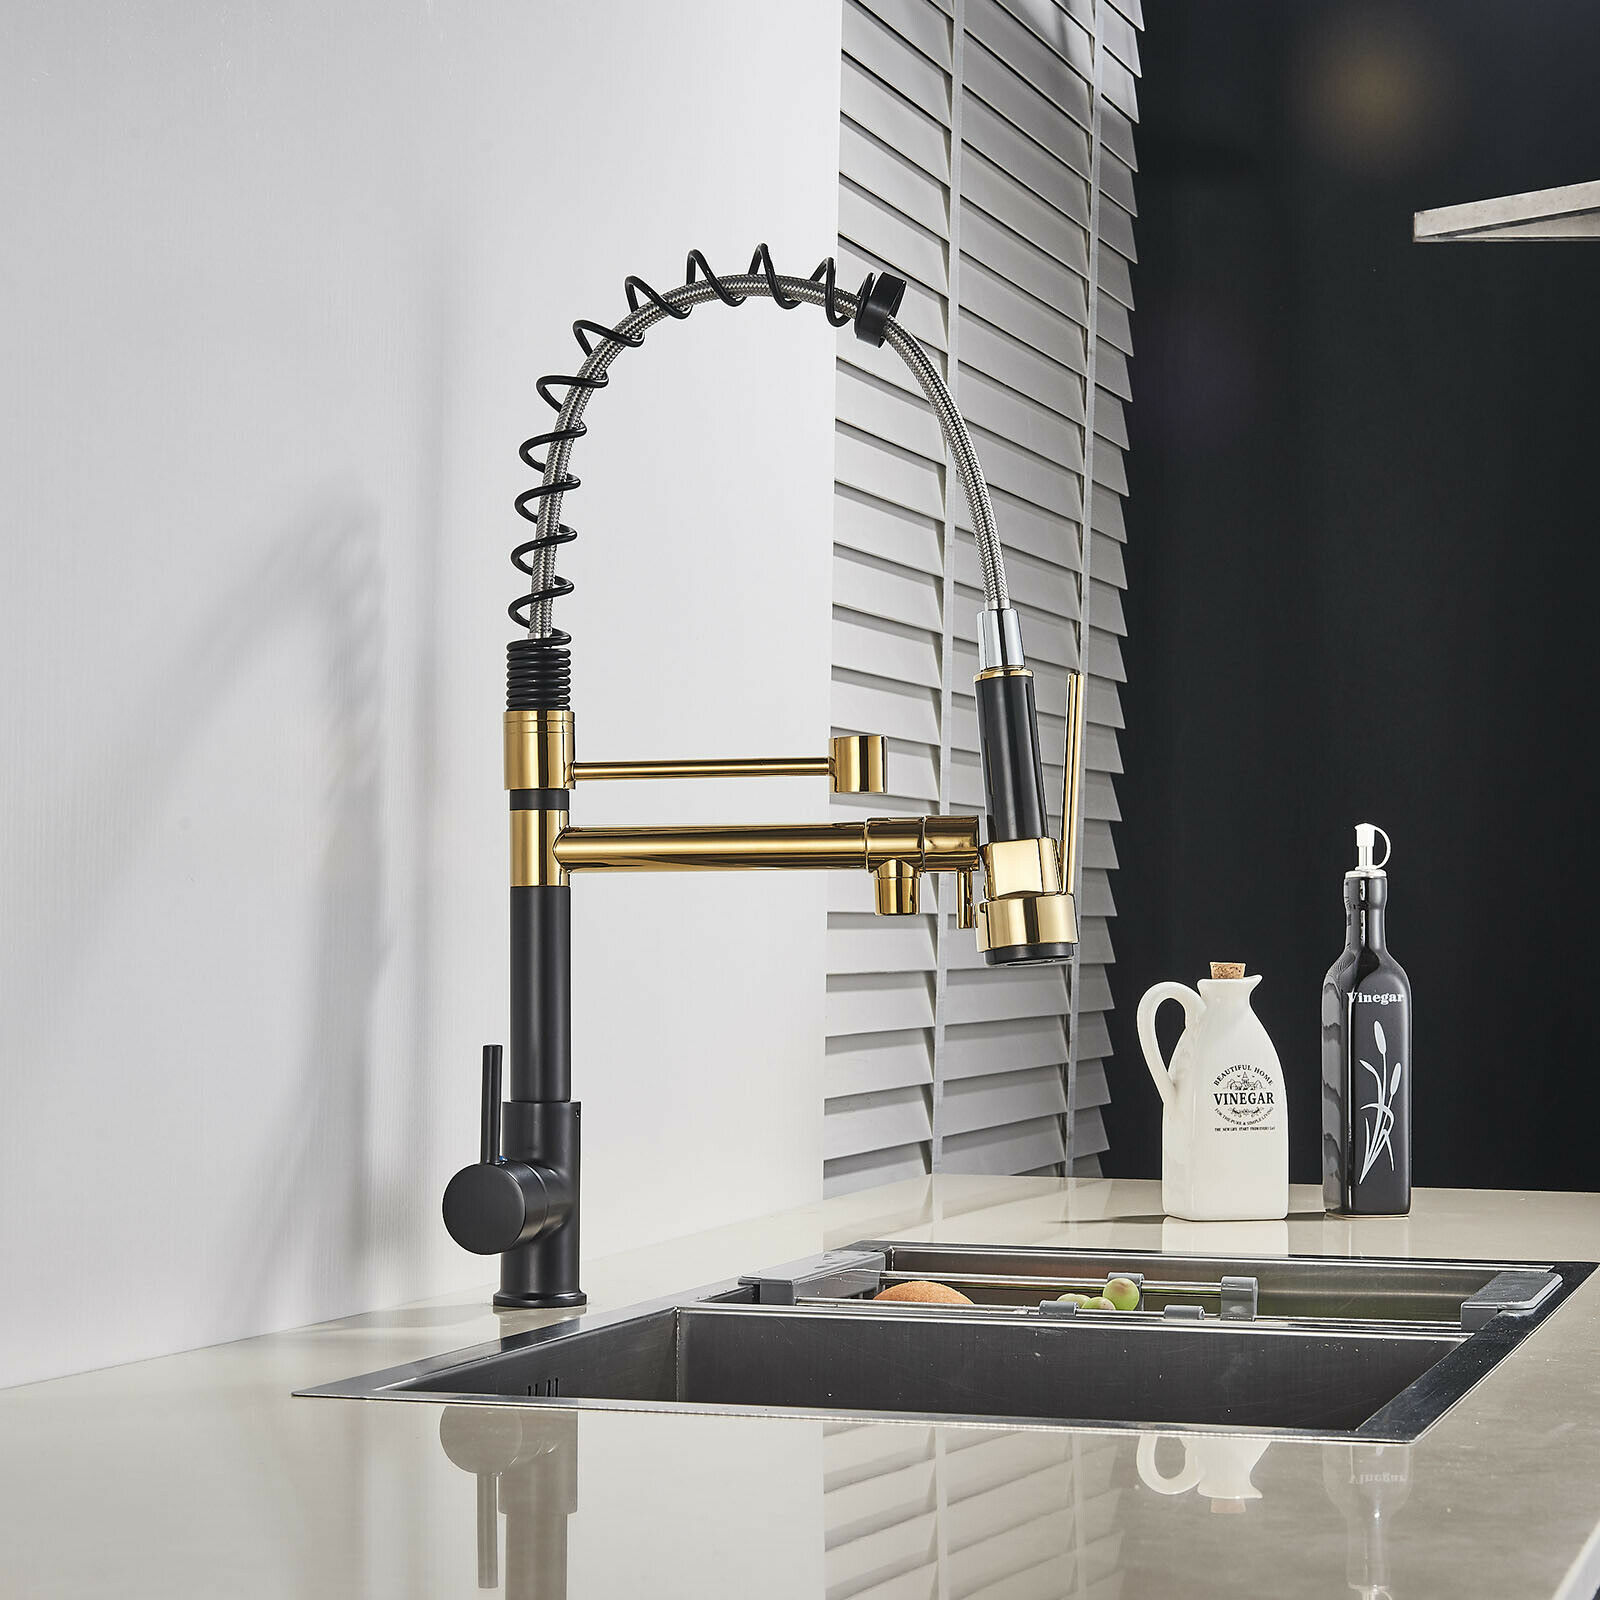 LED Kitchen Sink Faucet Pull Down Sprayer Swivel Spout Commercial Gold